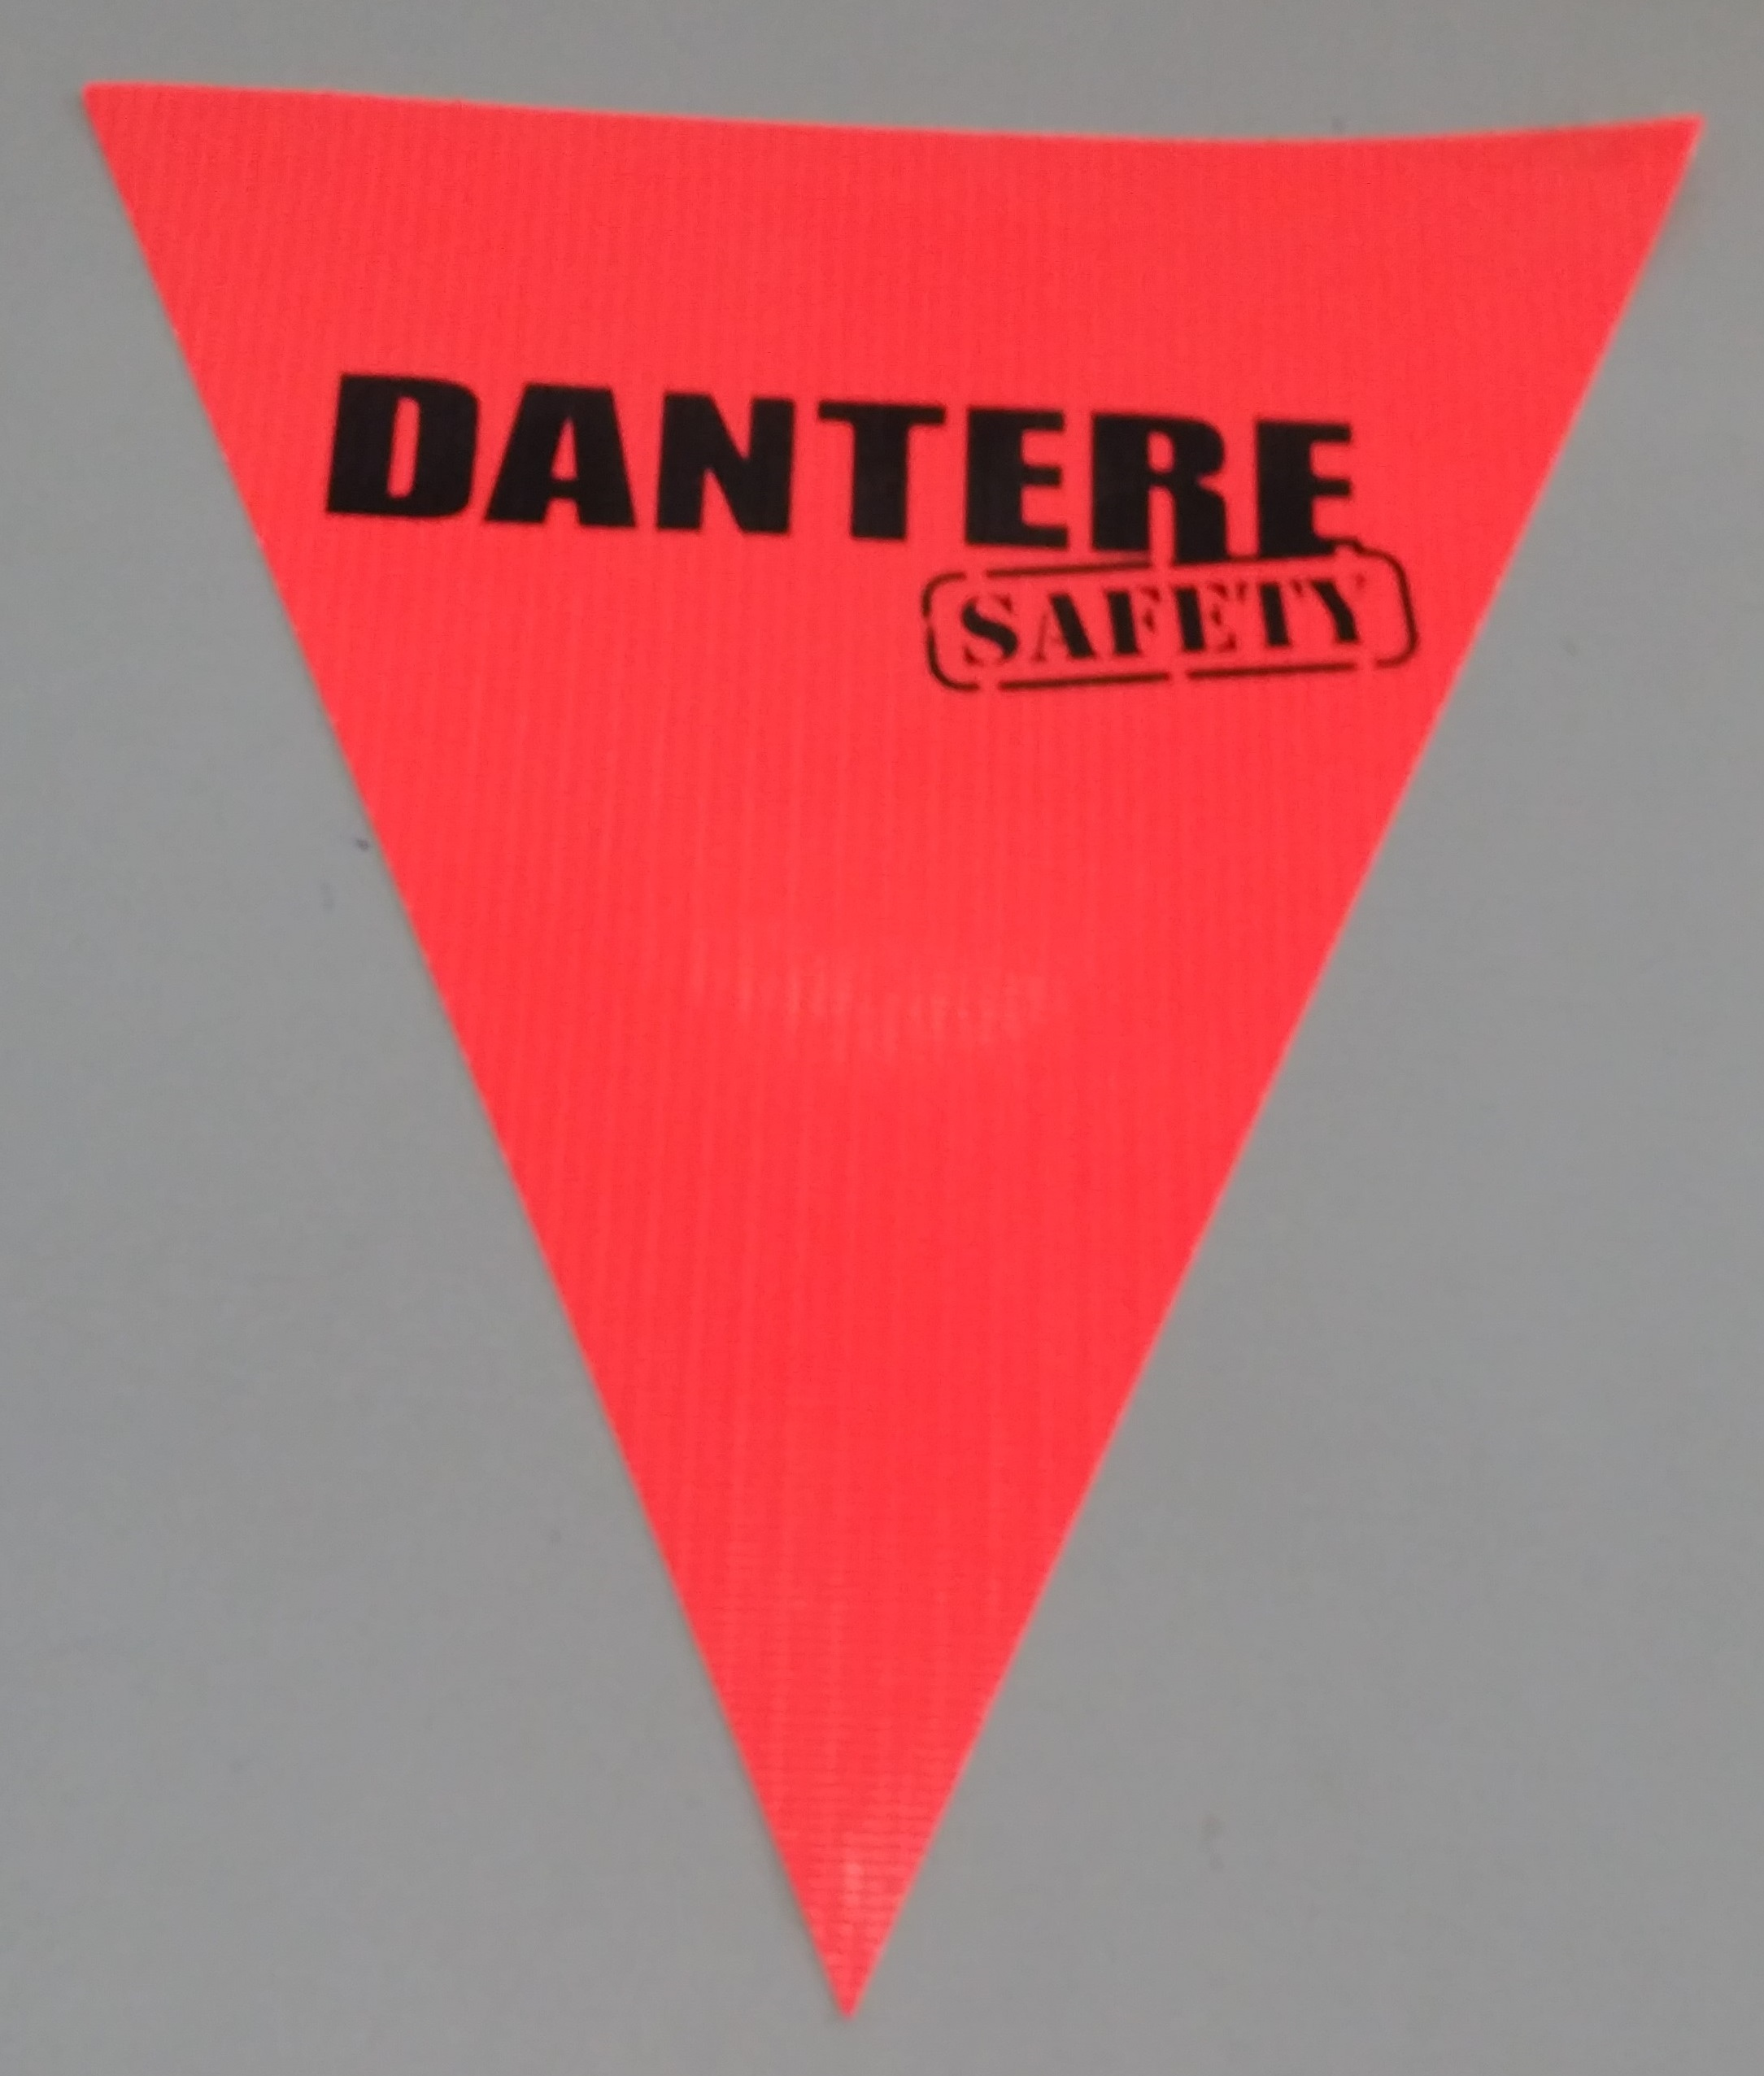 Dantere Safety (orange)